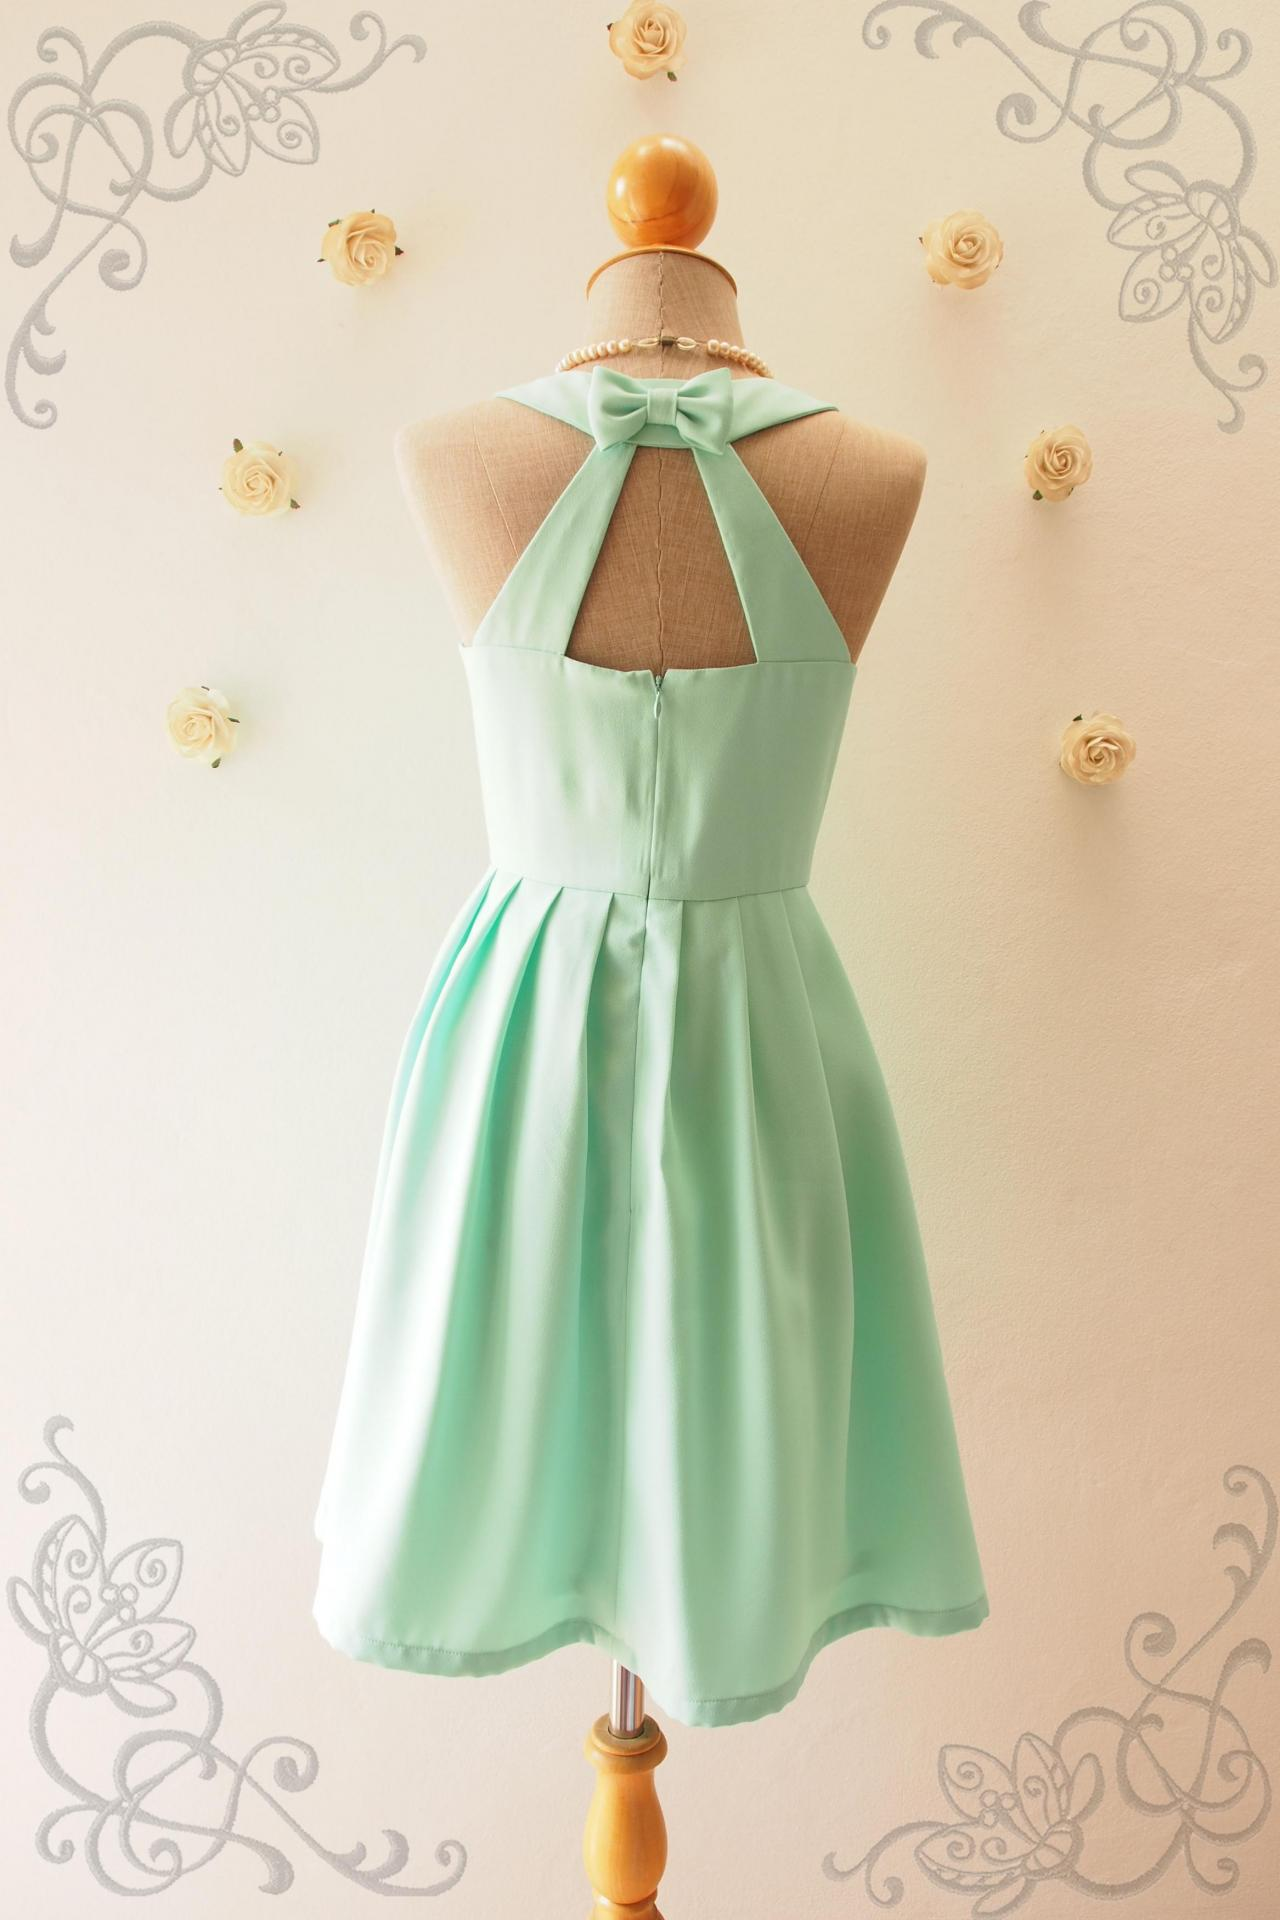 LOVE POTION - Mint Green dress, Mint Bridesmaid Dress, Mint Green Party Dress, Vintage Inspired, Audrey Hepburn Dress, Skater Dress, Mint formal dress, Summer Dress